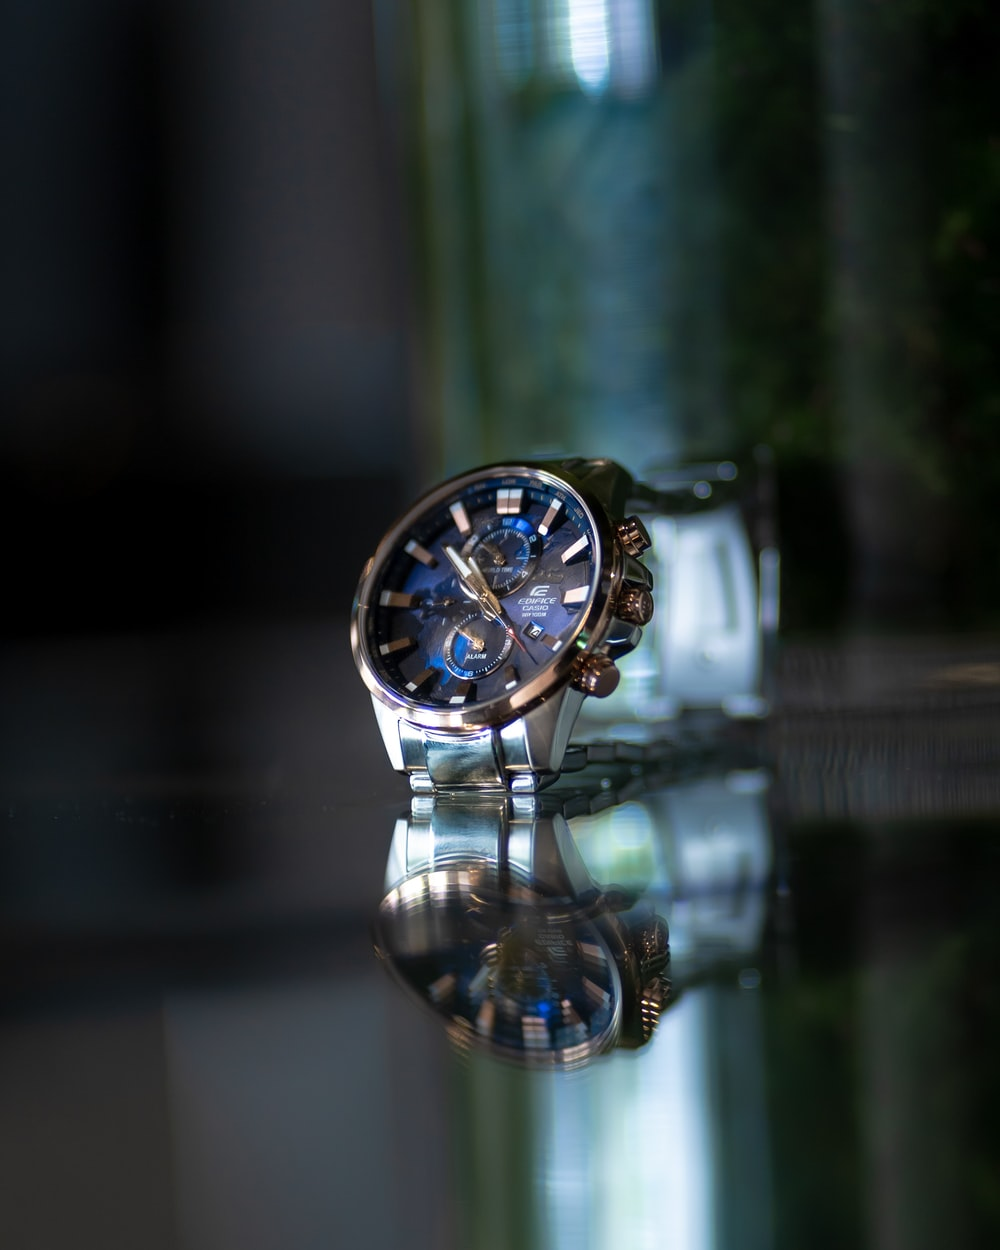 selective focus photography of round black and silver-colored chronograph watch